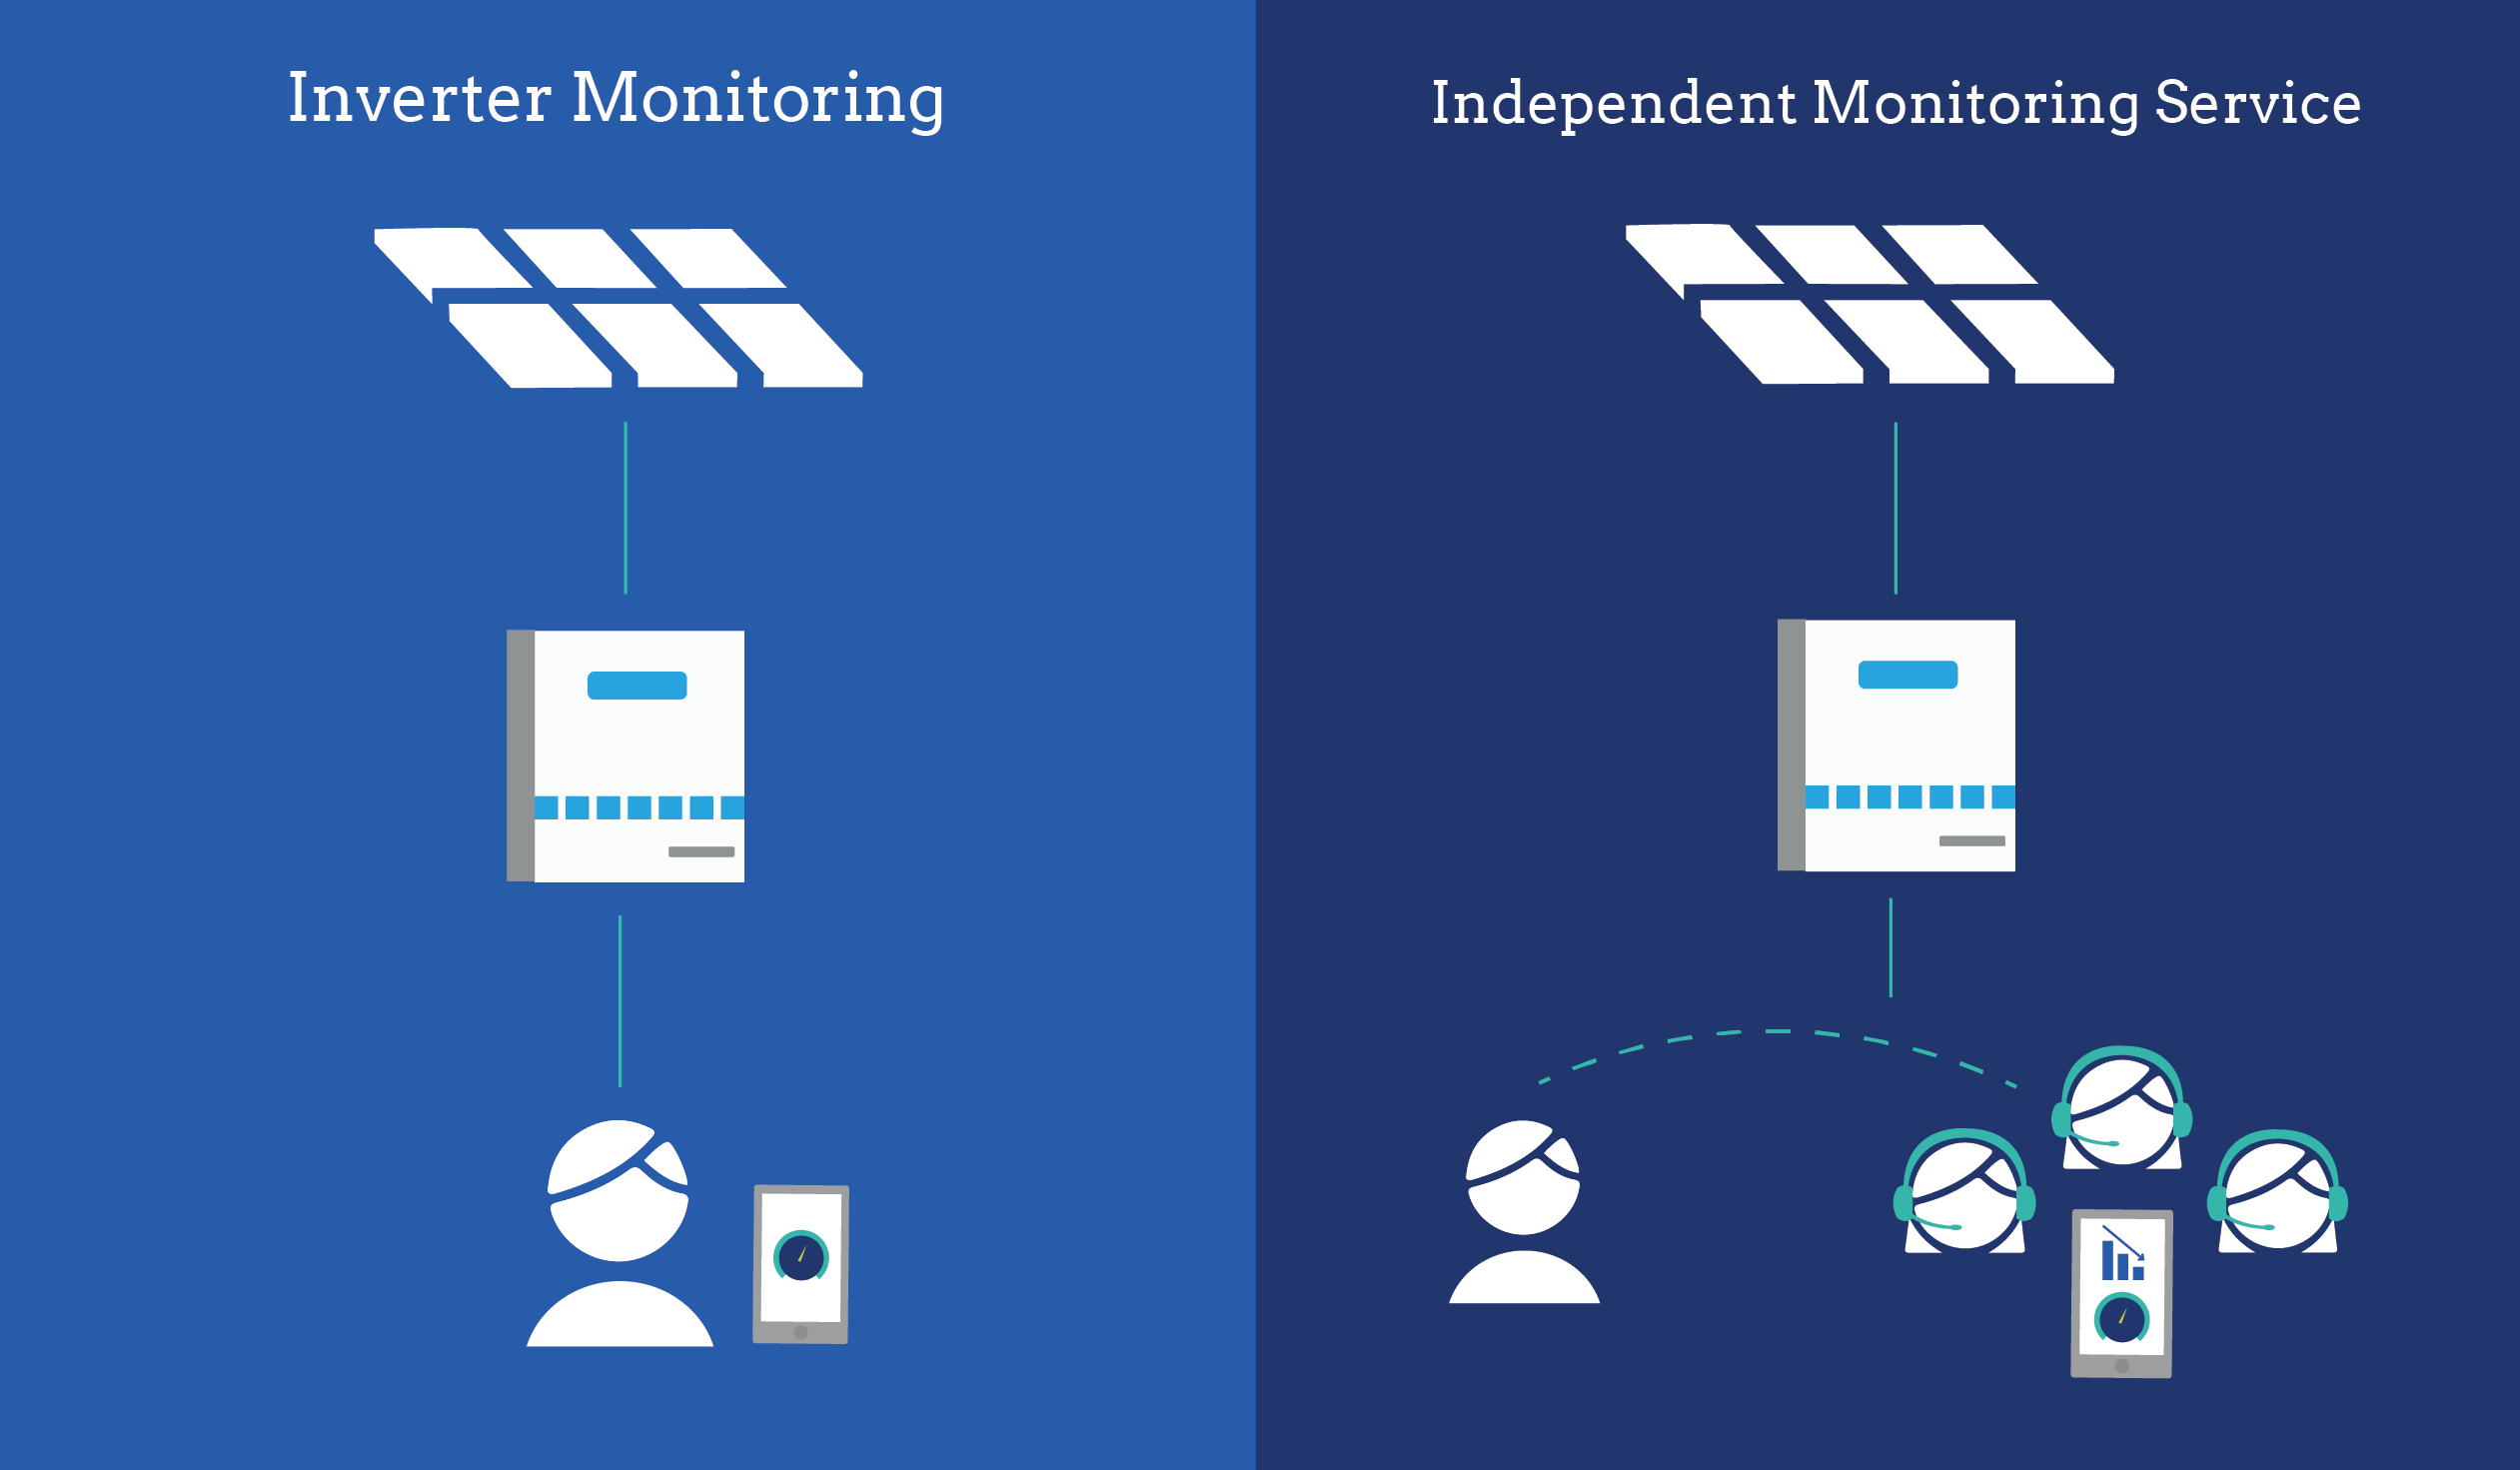 Best Solar Monitoring Services Available In 2019 Energysage Main Service Panel Upgrade Repair Experts For Your New Jersey Home Can Be Hardware Agnostic Meaning The Software Works With Any Kind Of Panels Or Inverters